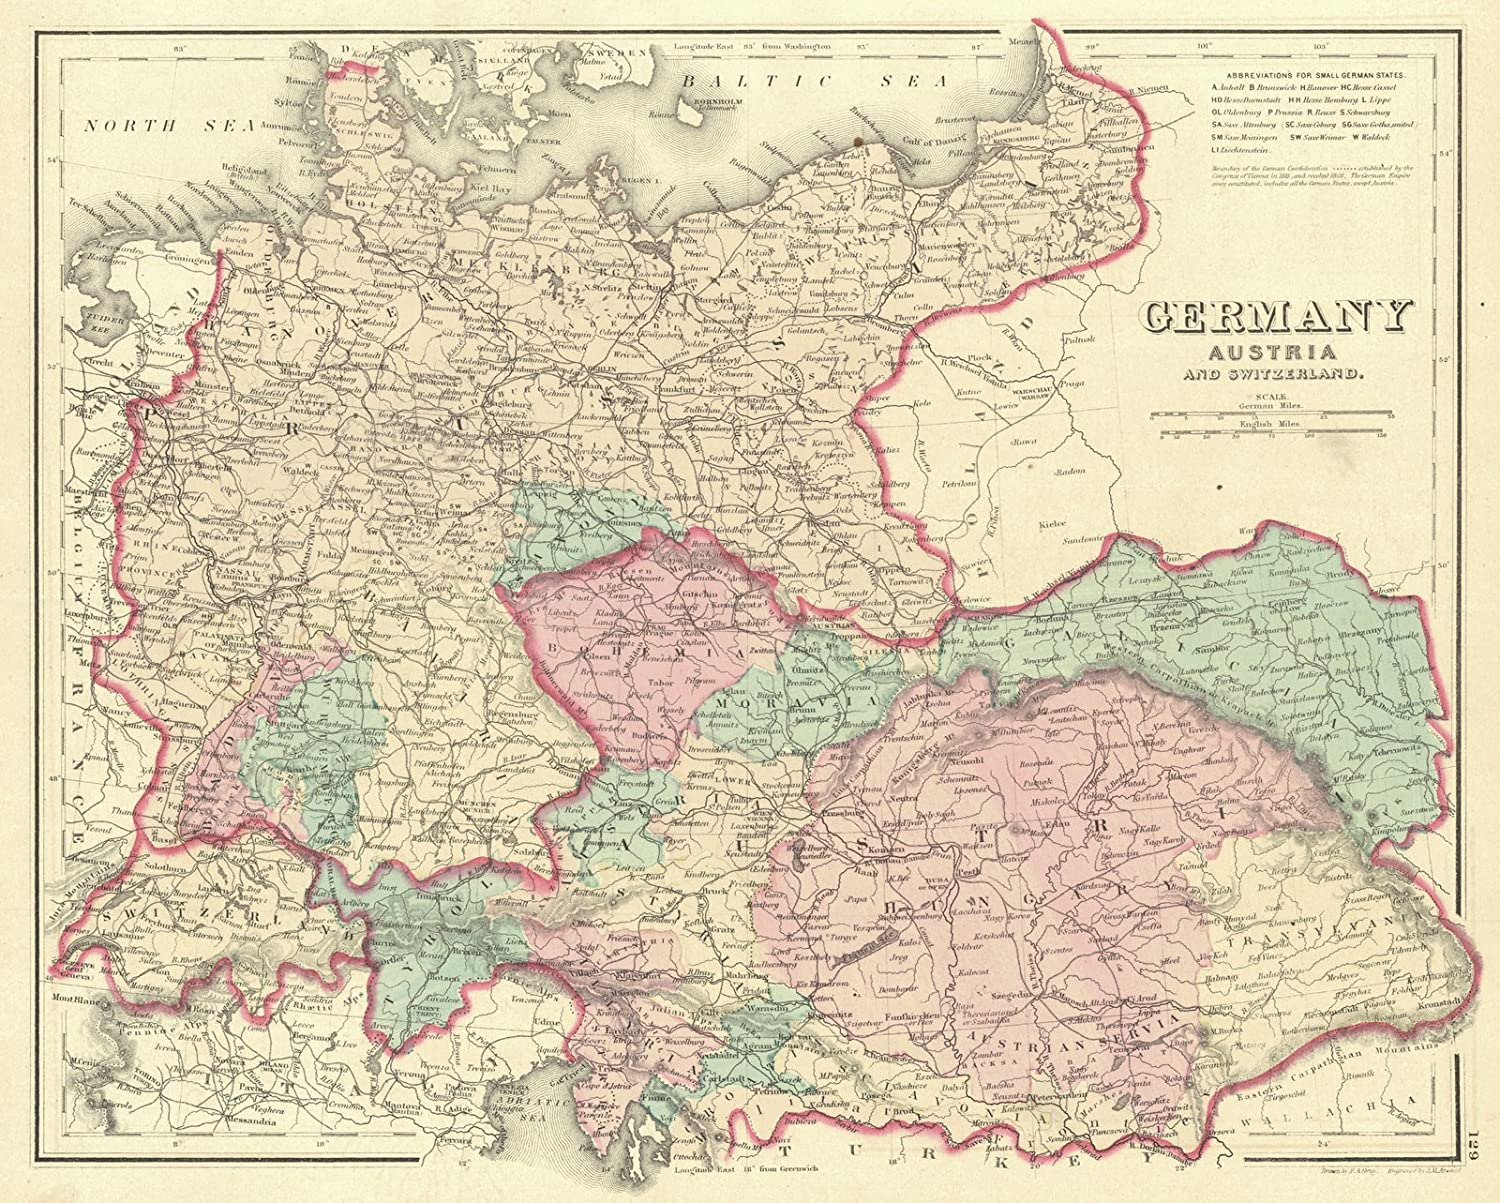 Amazon historic map 1876 germany austria and switzerland amazon historic map 1876 germany austria and switzerland posters prints gumiabroncs Gallery